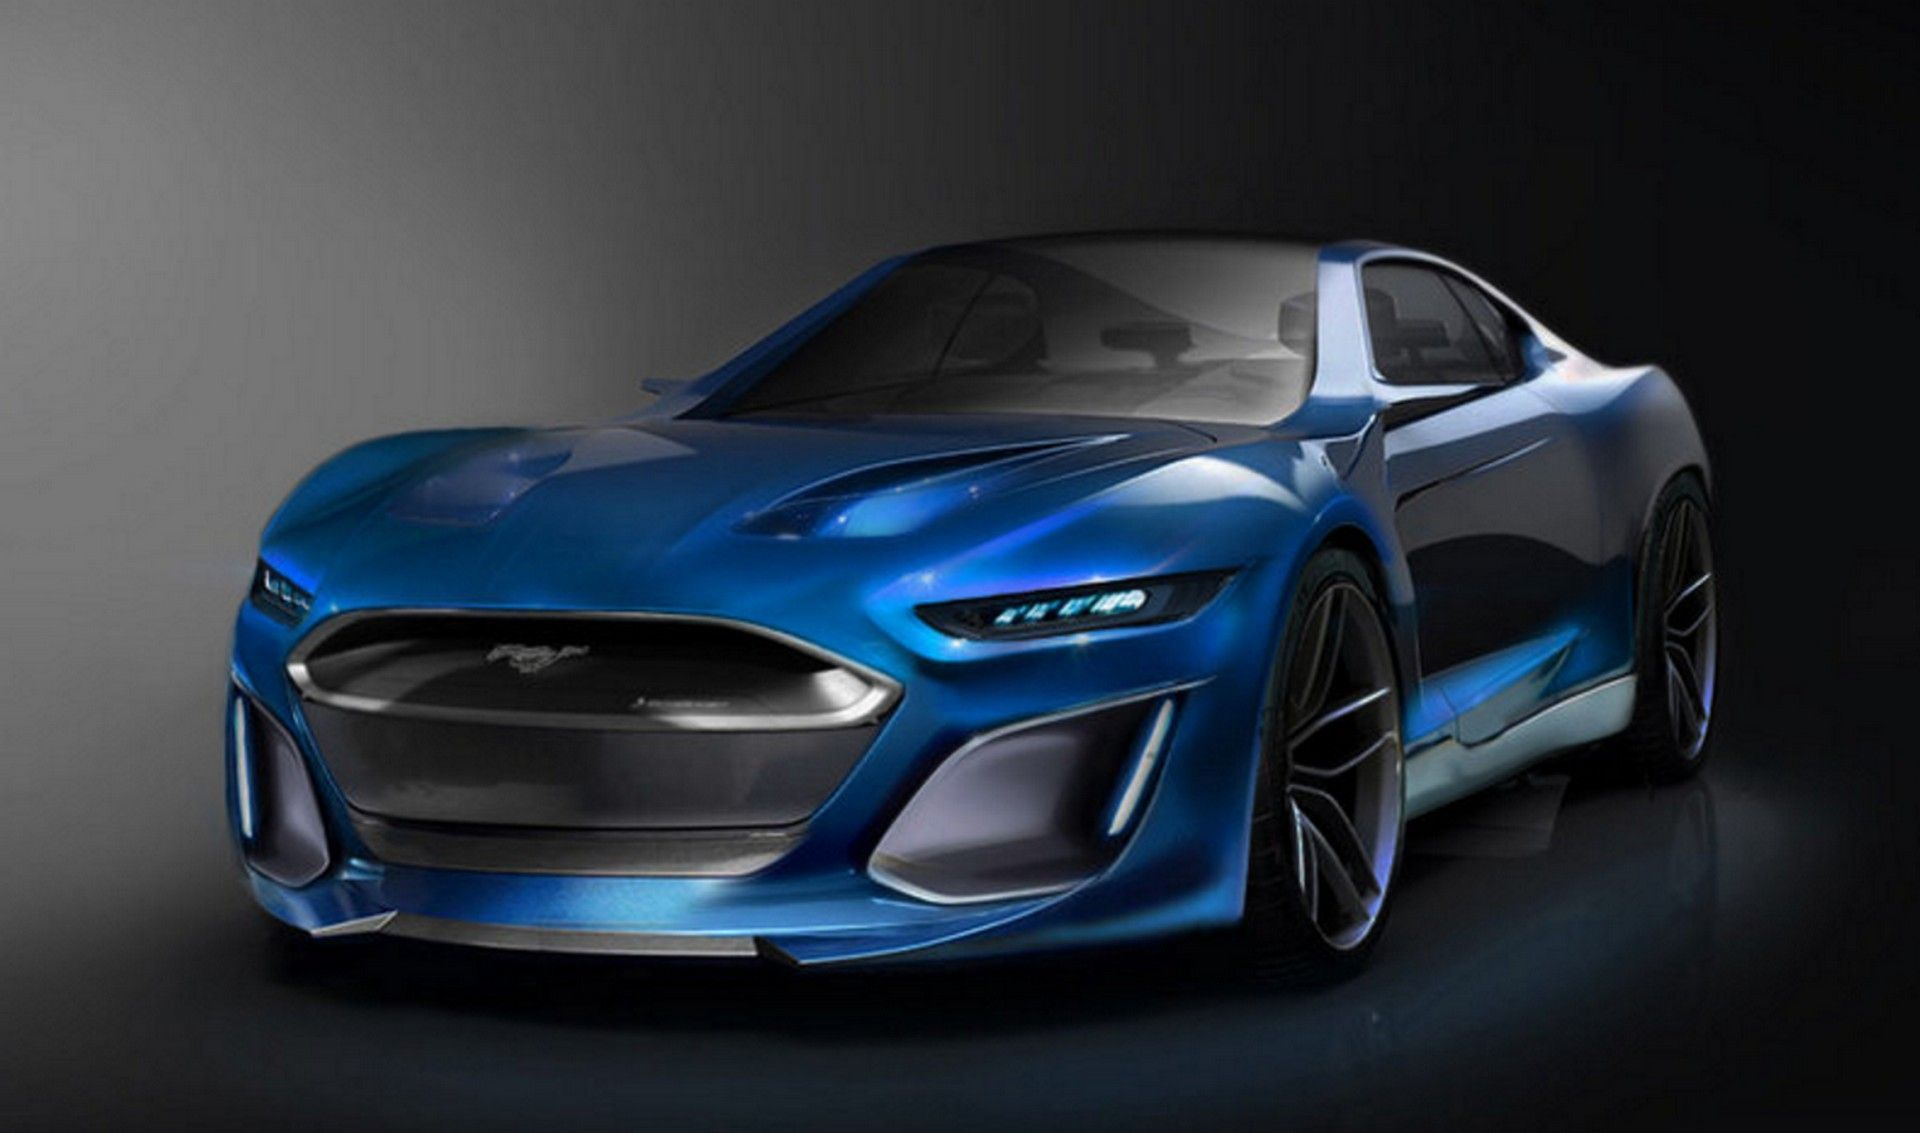 Ford Cobra 2021 Costs In 2020 Ford Mustang Gt500 Concept Cars Ford Shelby